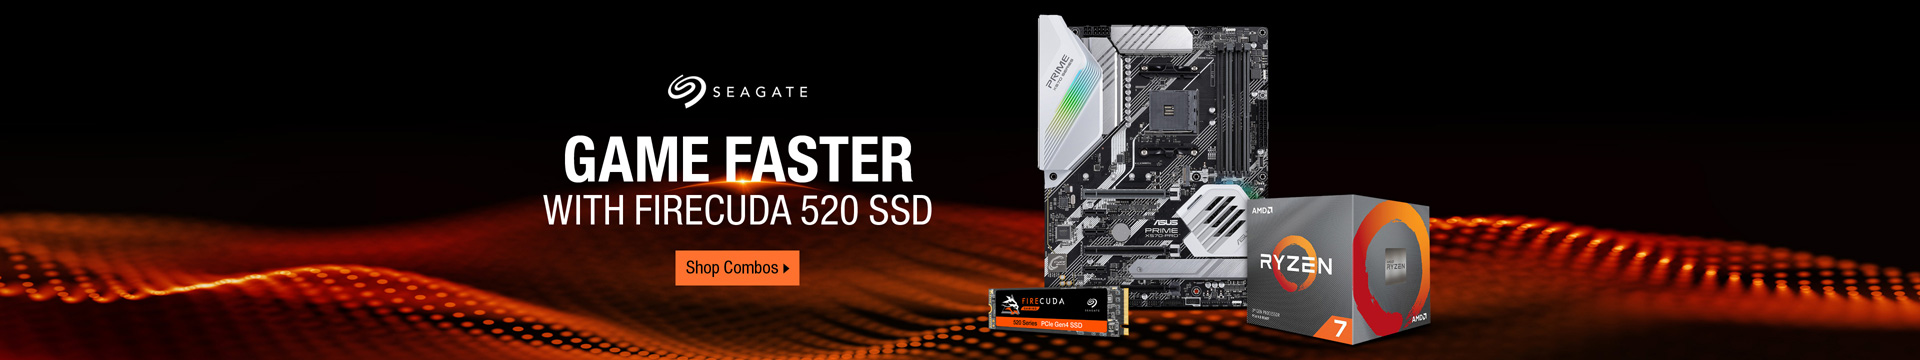 GAME FASTER WITH FIRECUDA 520 SSD